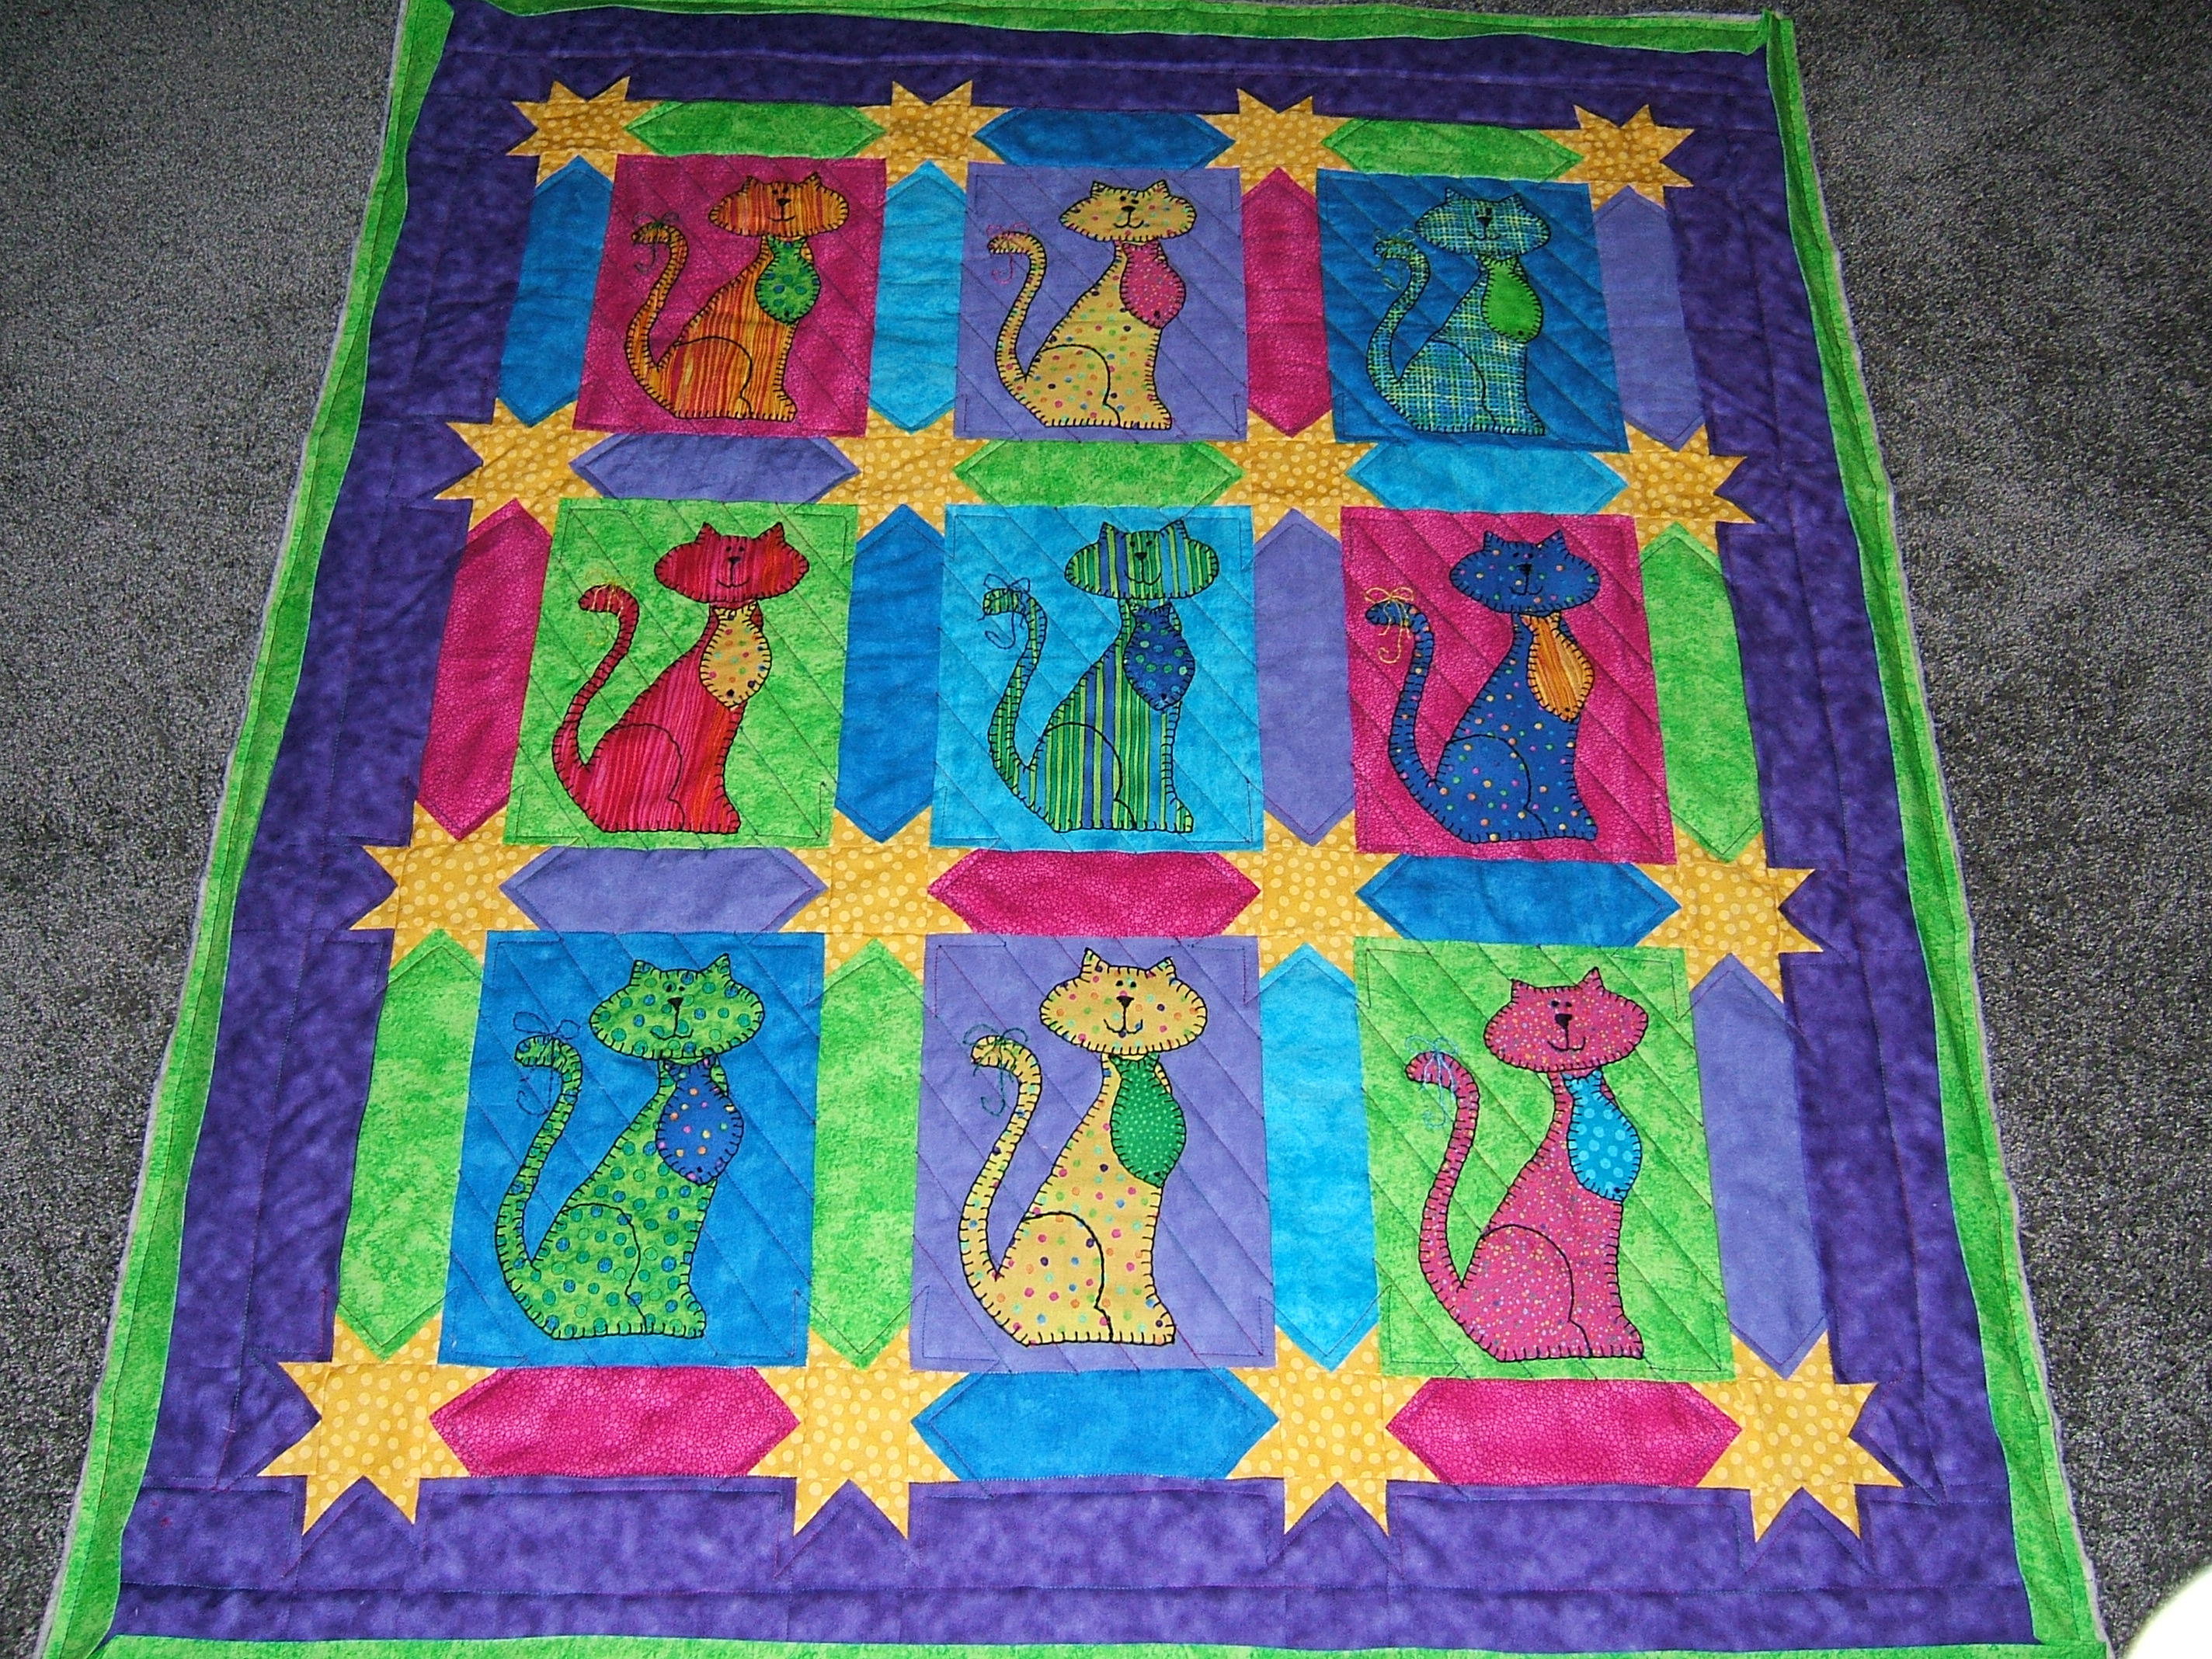 shop wle a elephants quilts play for quilt custom handmade baby shipping aqua htm